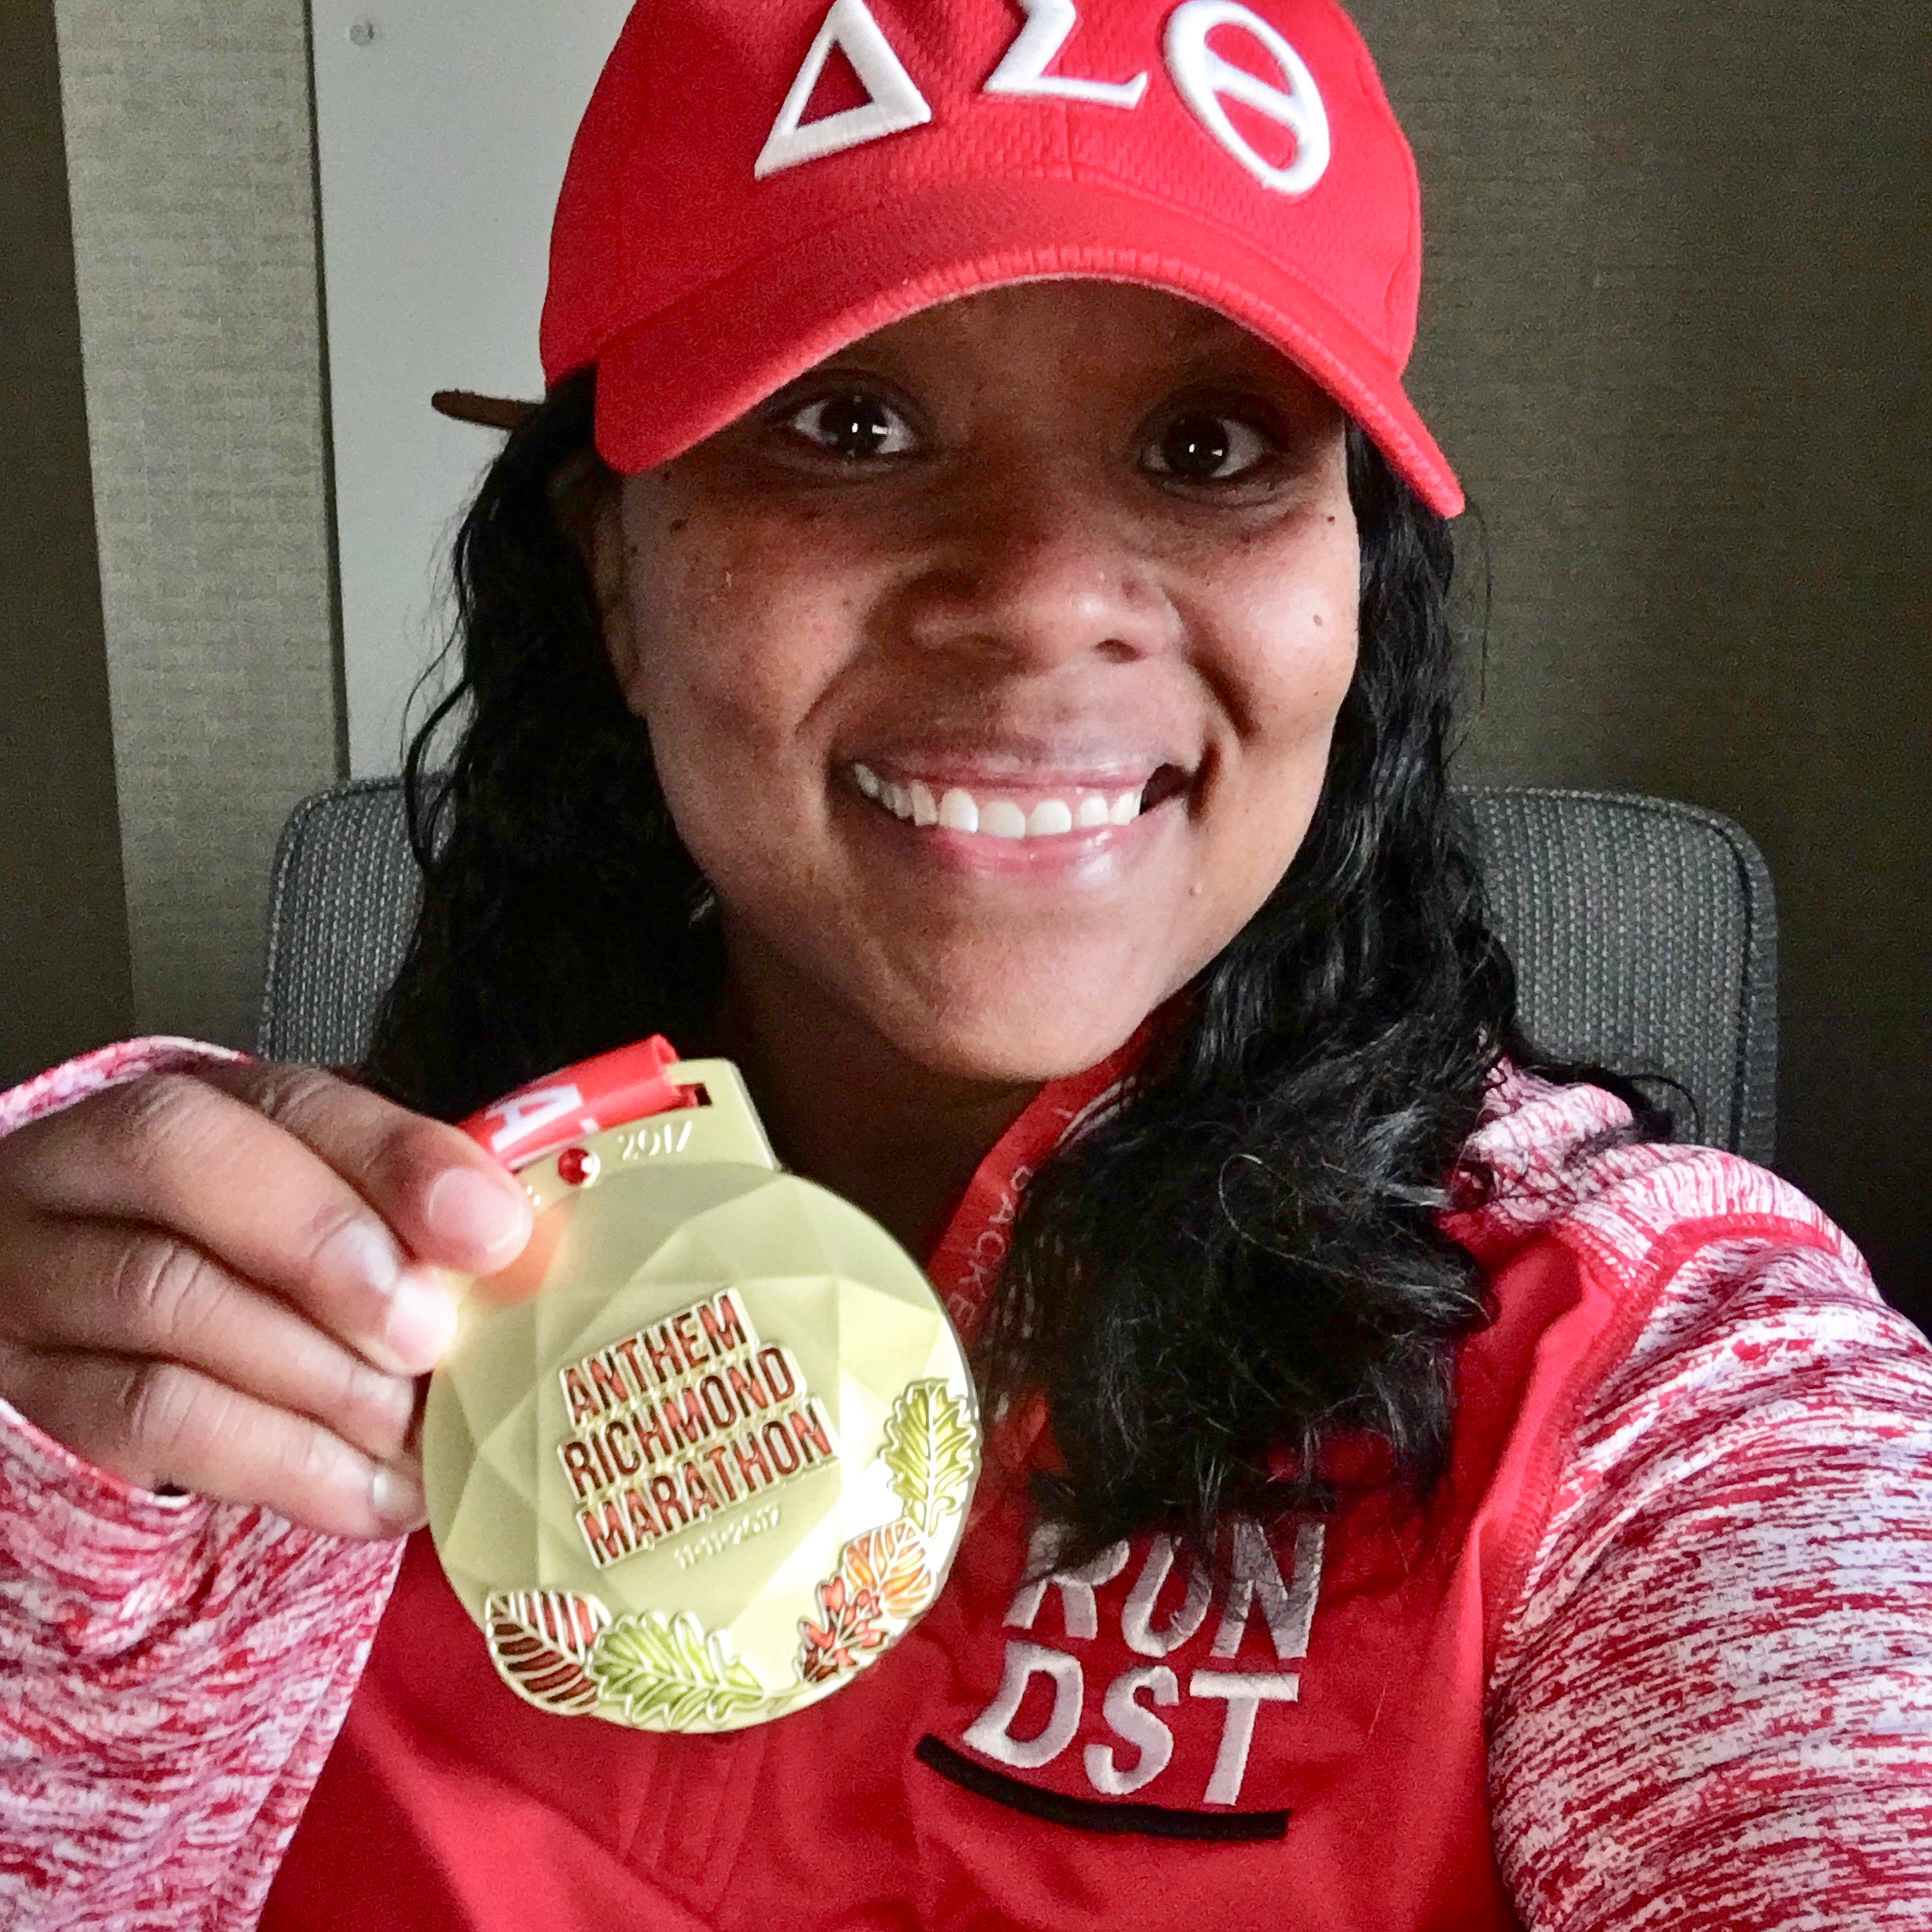 uc irvine school of nursing assistant professor nakia best after running richmond virginia marathon 2017